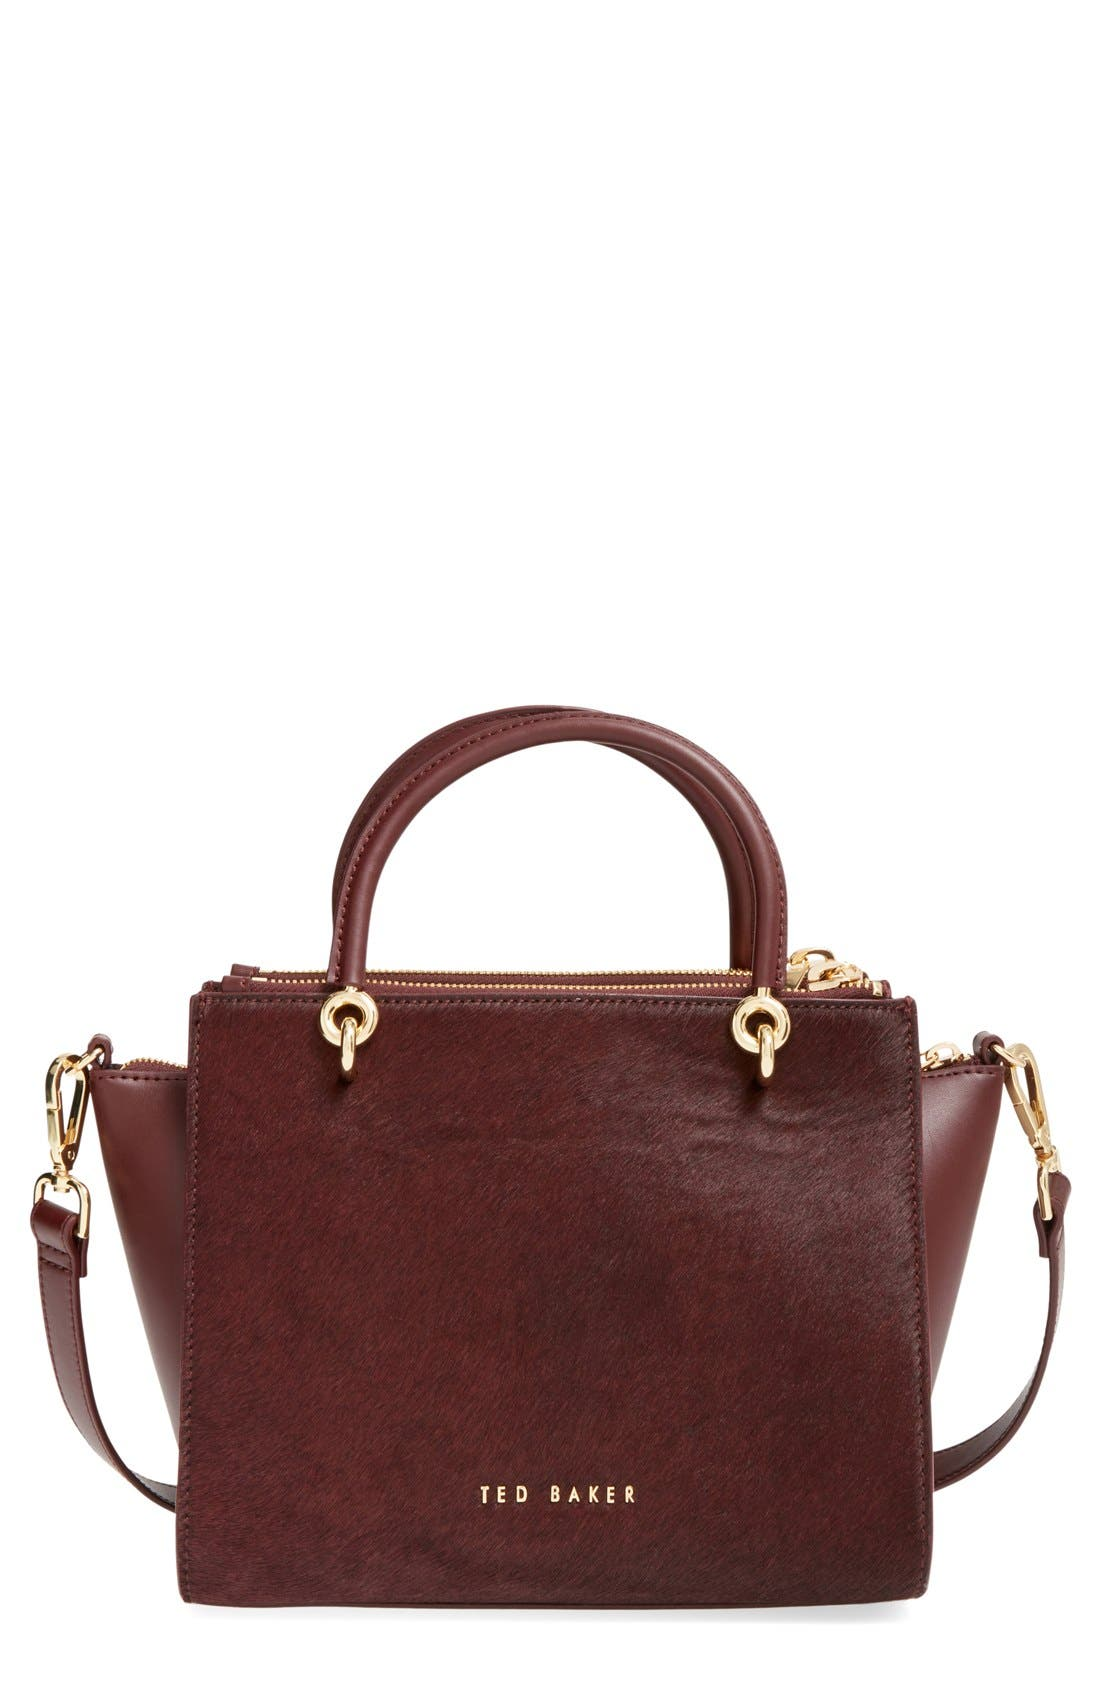 Main Image - Ted Baker London 'Haylie' Leather & Genuine Calf Hair Crossbody Tote Bag